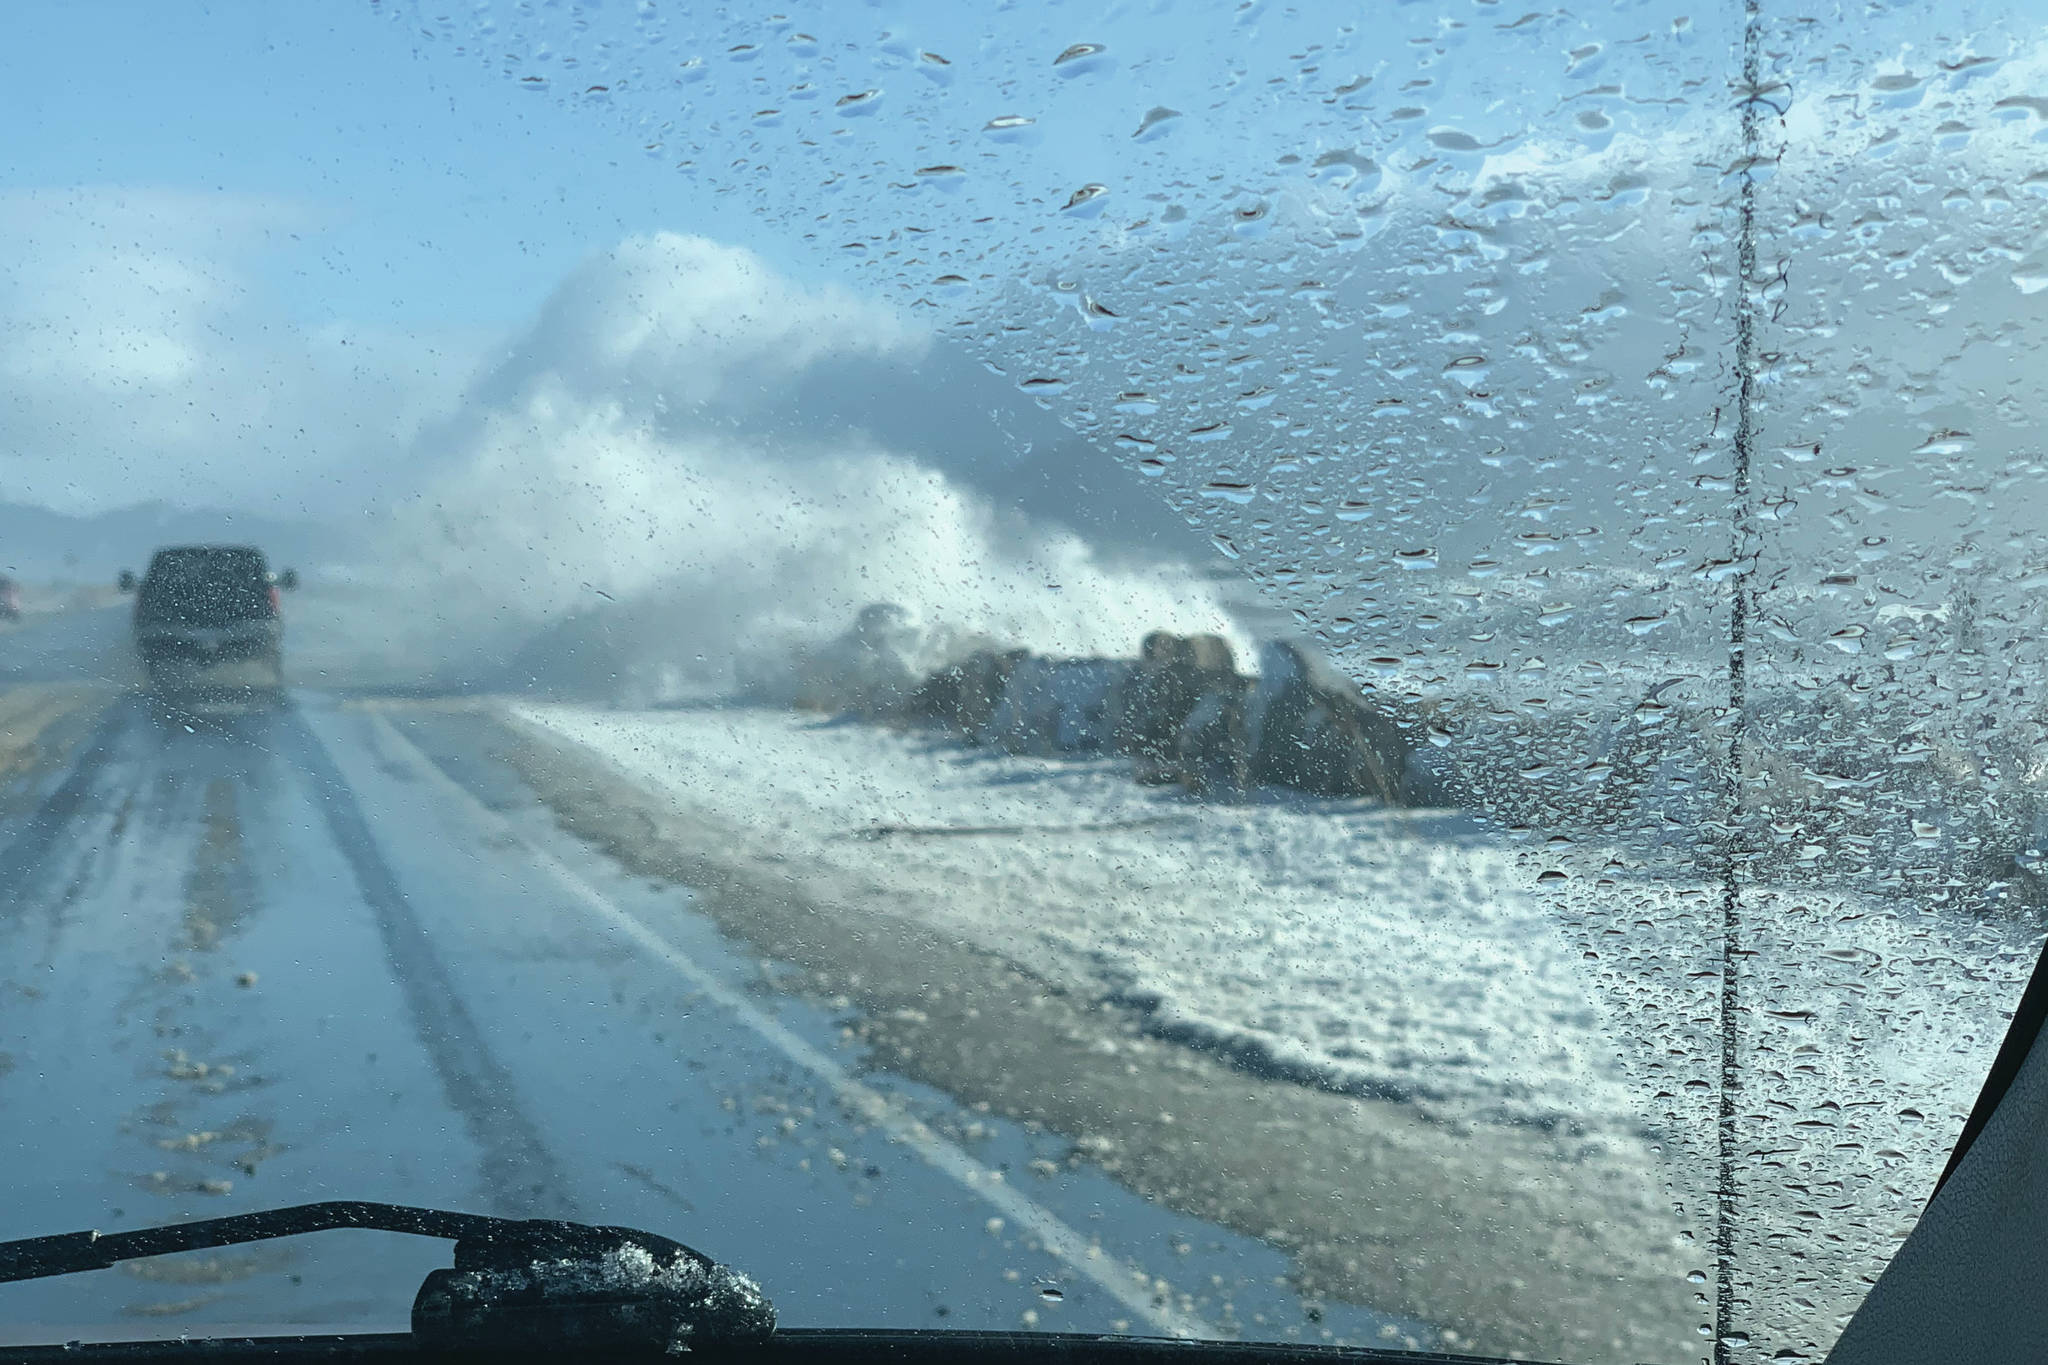 Waves during an extreme high tide and big seas pound the Homer Spit on Sunday afternoon, Feb. 28, 2021, on the Homer Spit, as seen through photographer Malia Anderson's windshield. (Photo by Malia Anderson / Homer News)